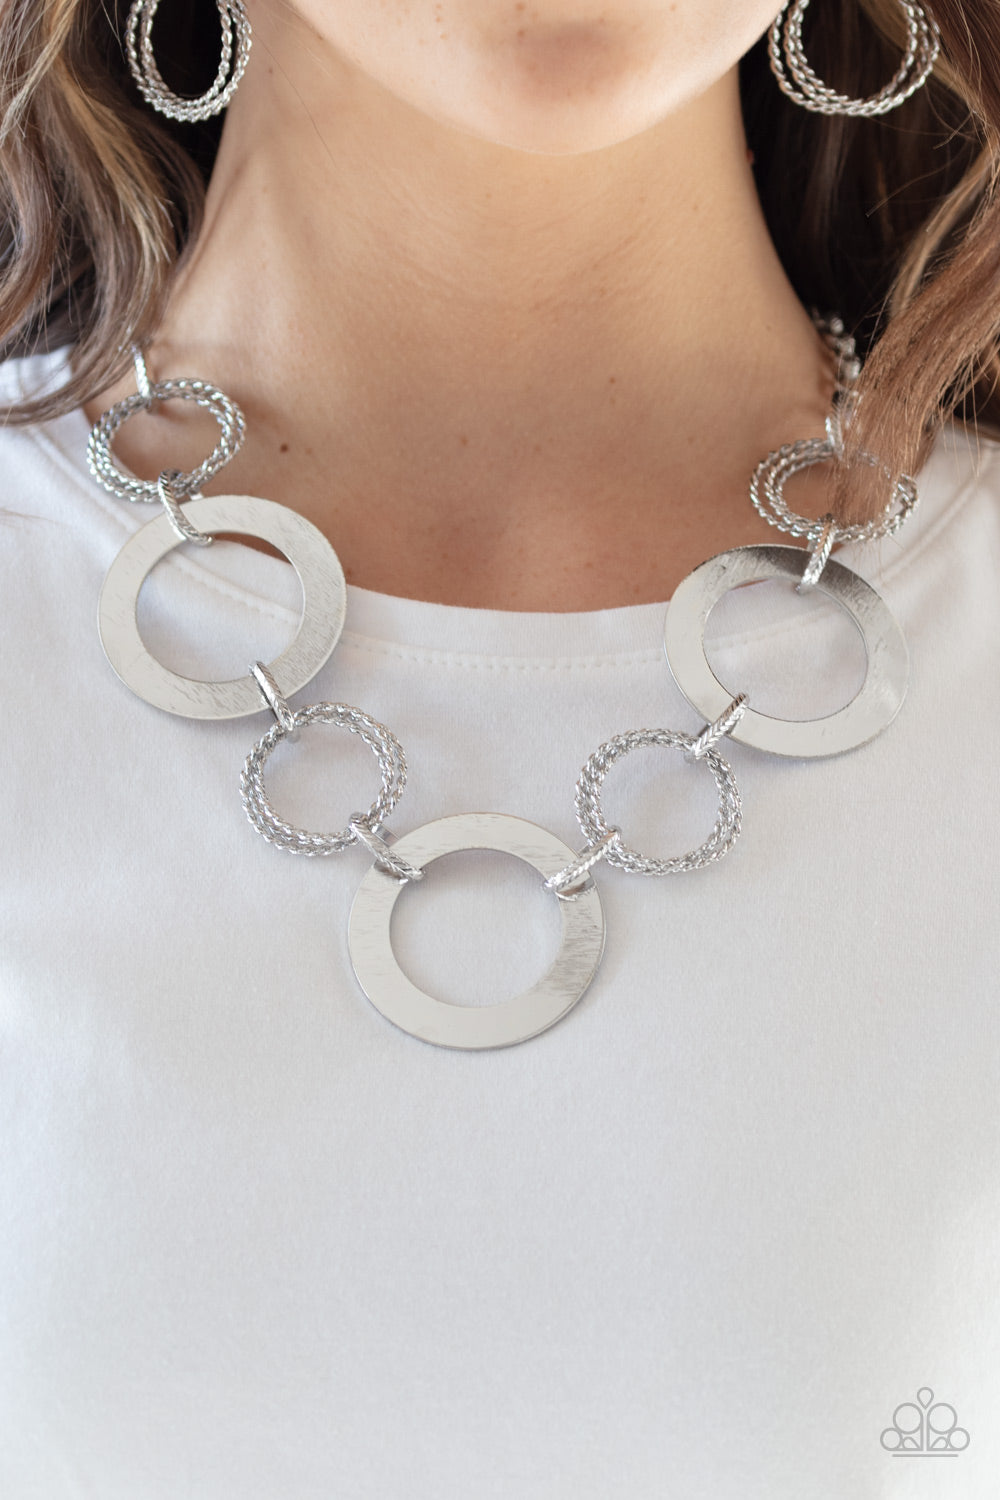 Ringed In Radiance Silver Paparazzi Necklace - JewelTonez Jewelry